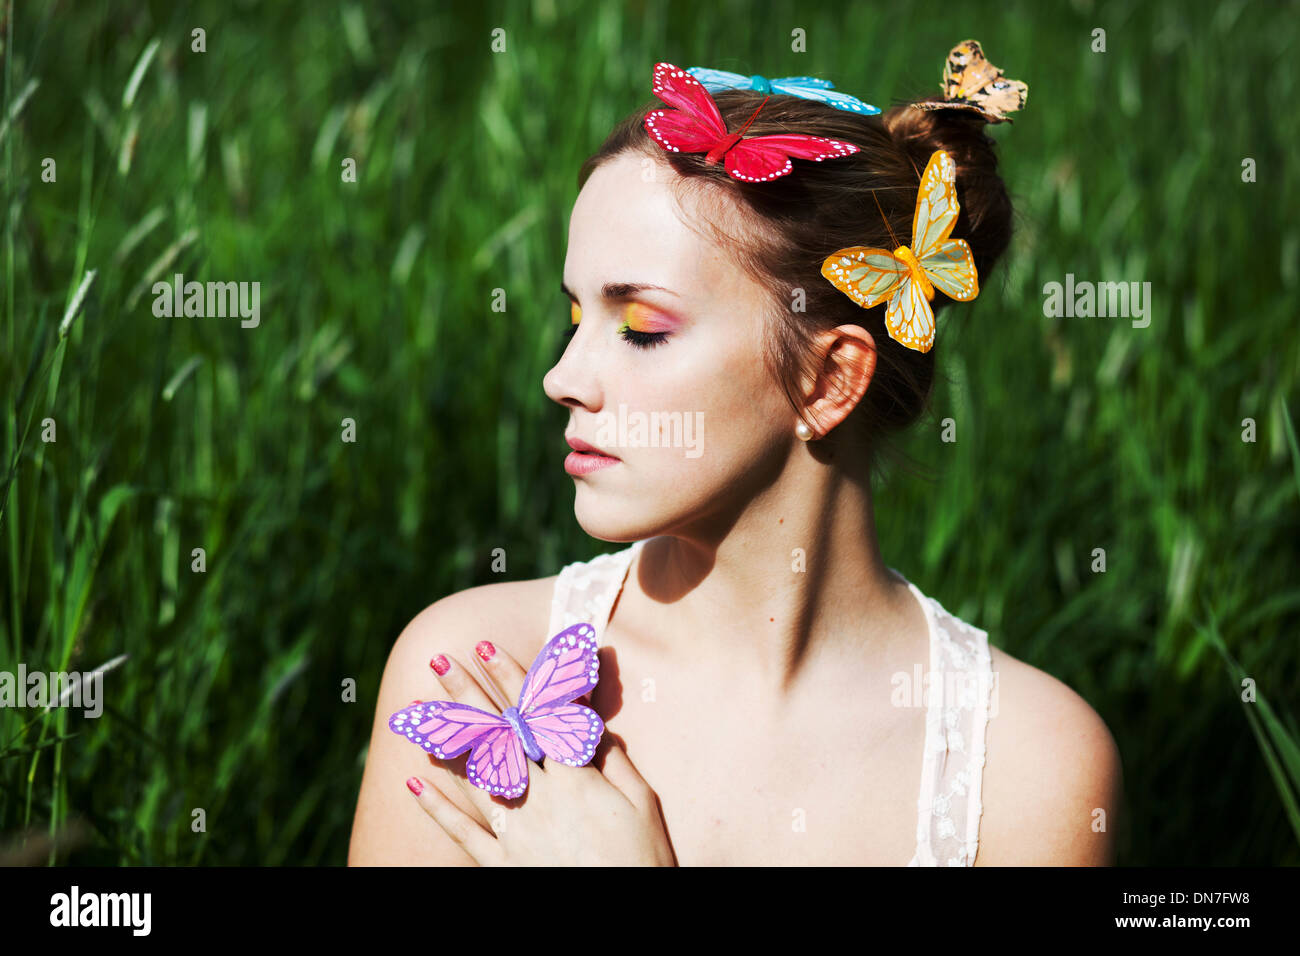 Young woman with closed eyes and artificial butterflies - Stock Image